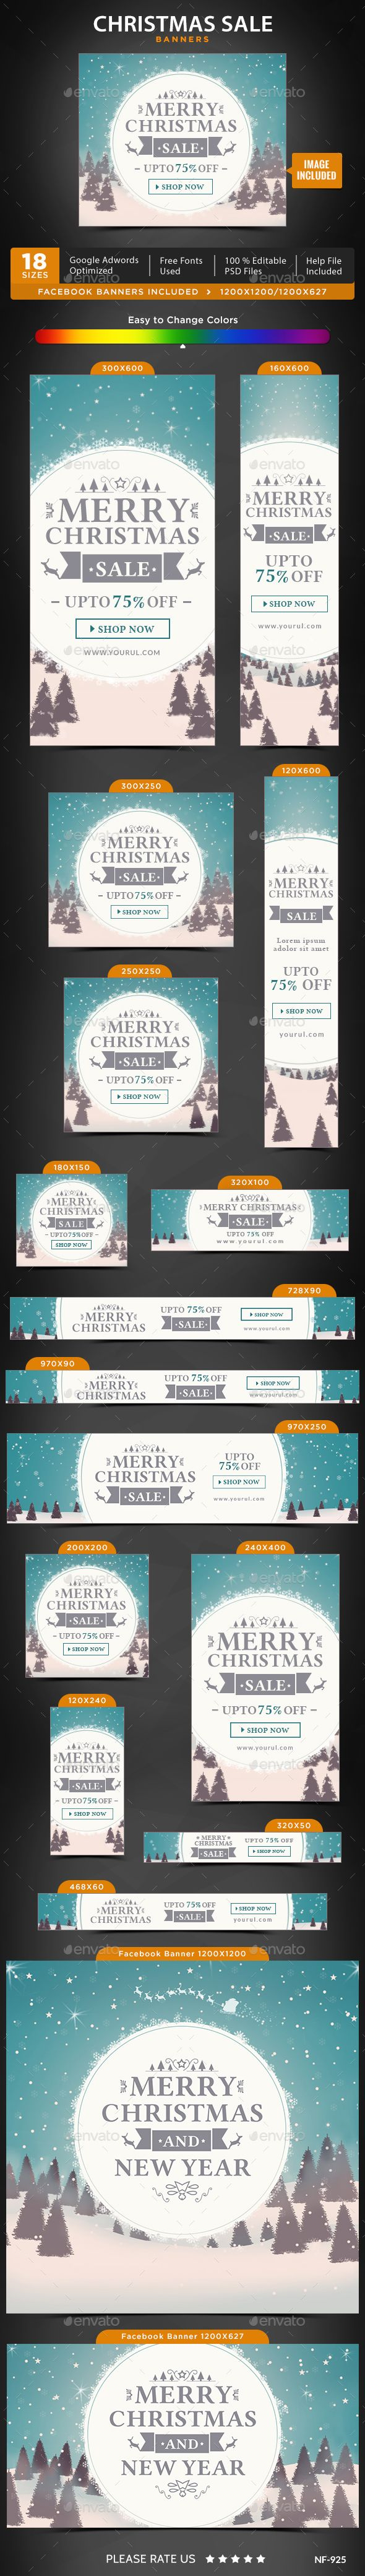 Christmas Sale Web Banners Template PSD #design #ad Download: http://graphicriver.net/item/christmas-sale-banners/14196644?ref=ksioks